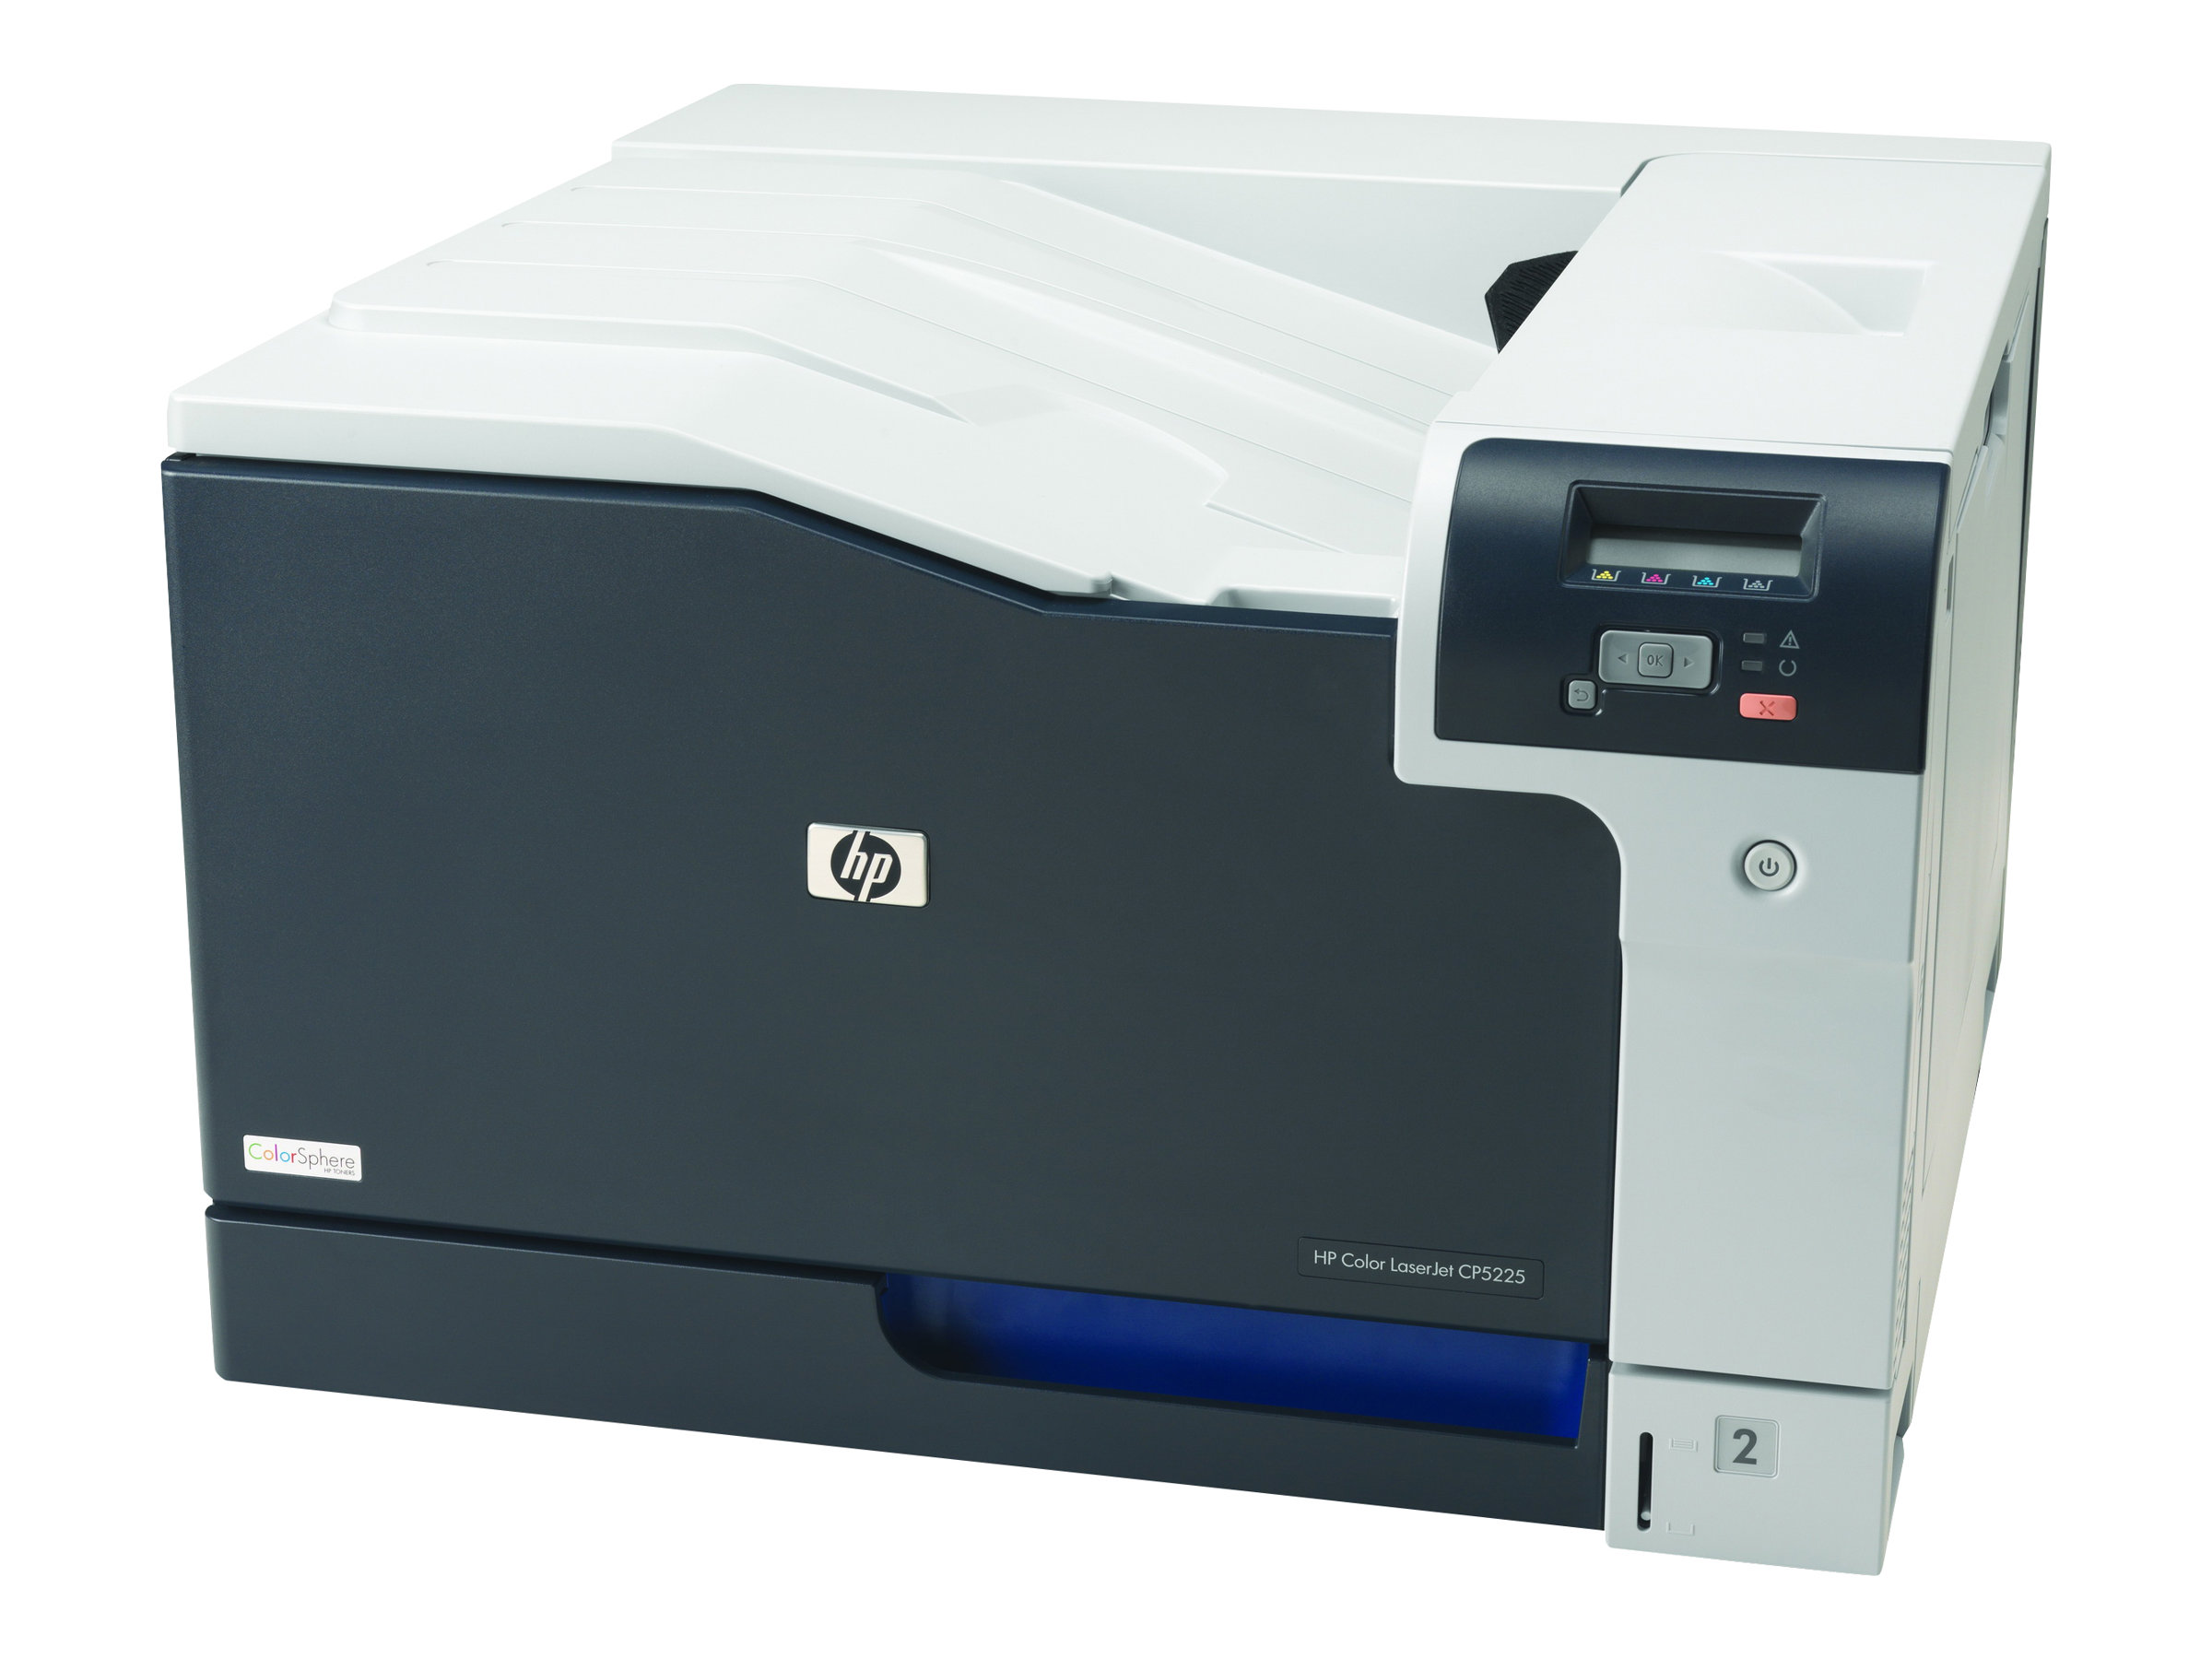 HP Color LaserJet Professional CP5225n - printer - color - laser